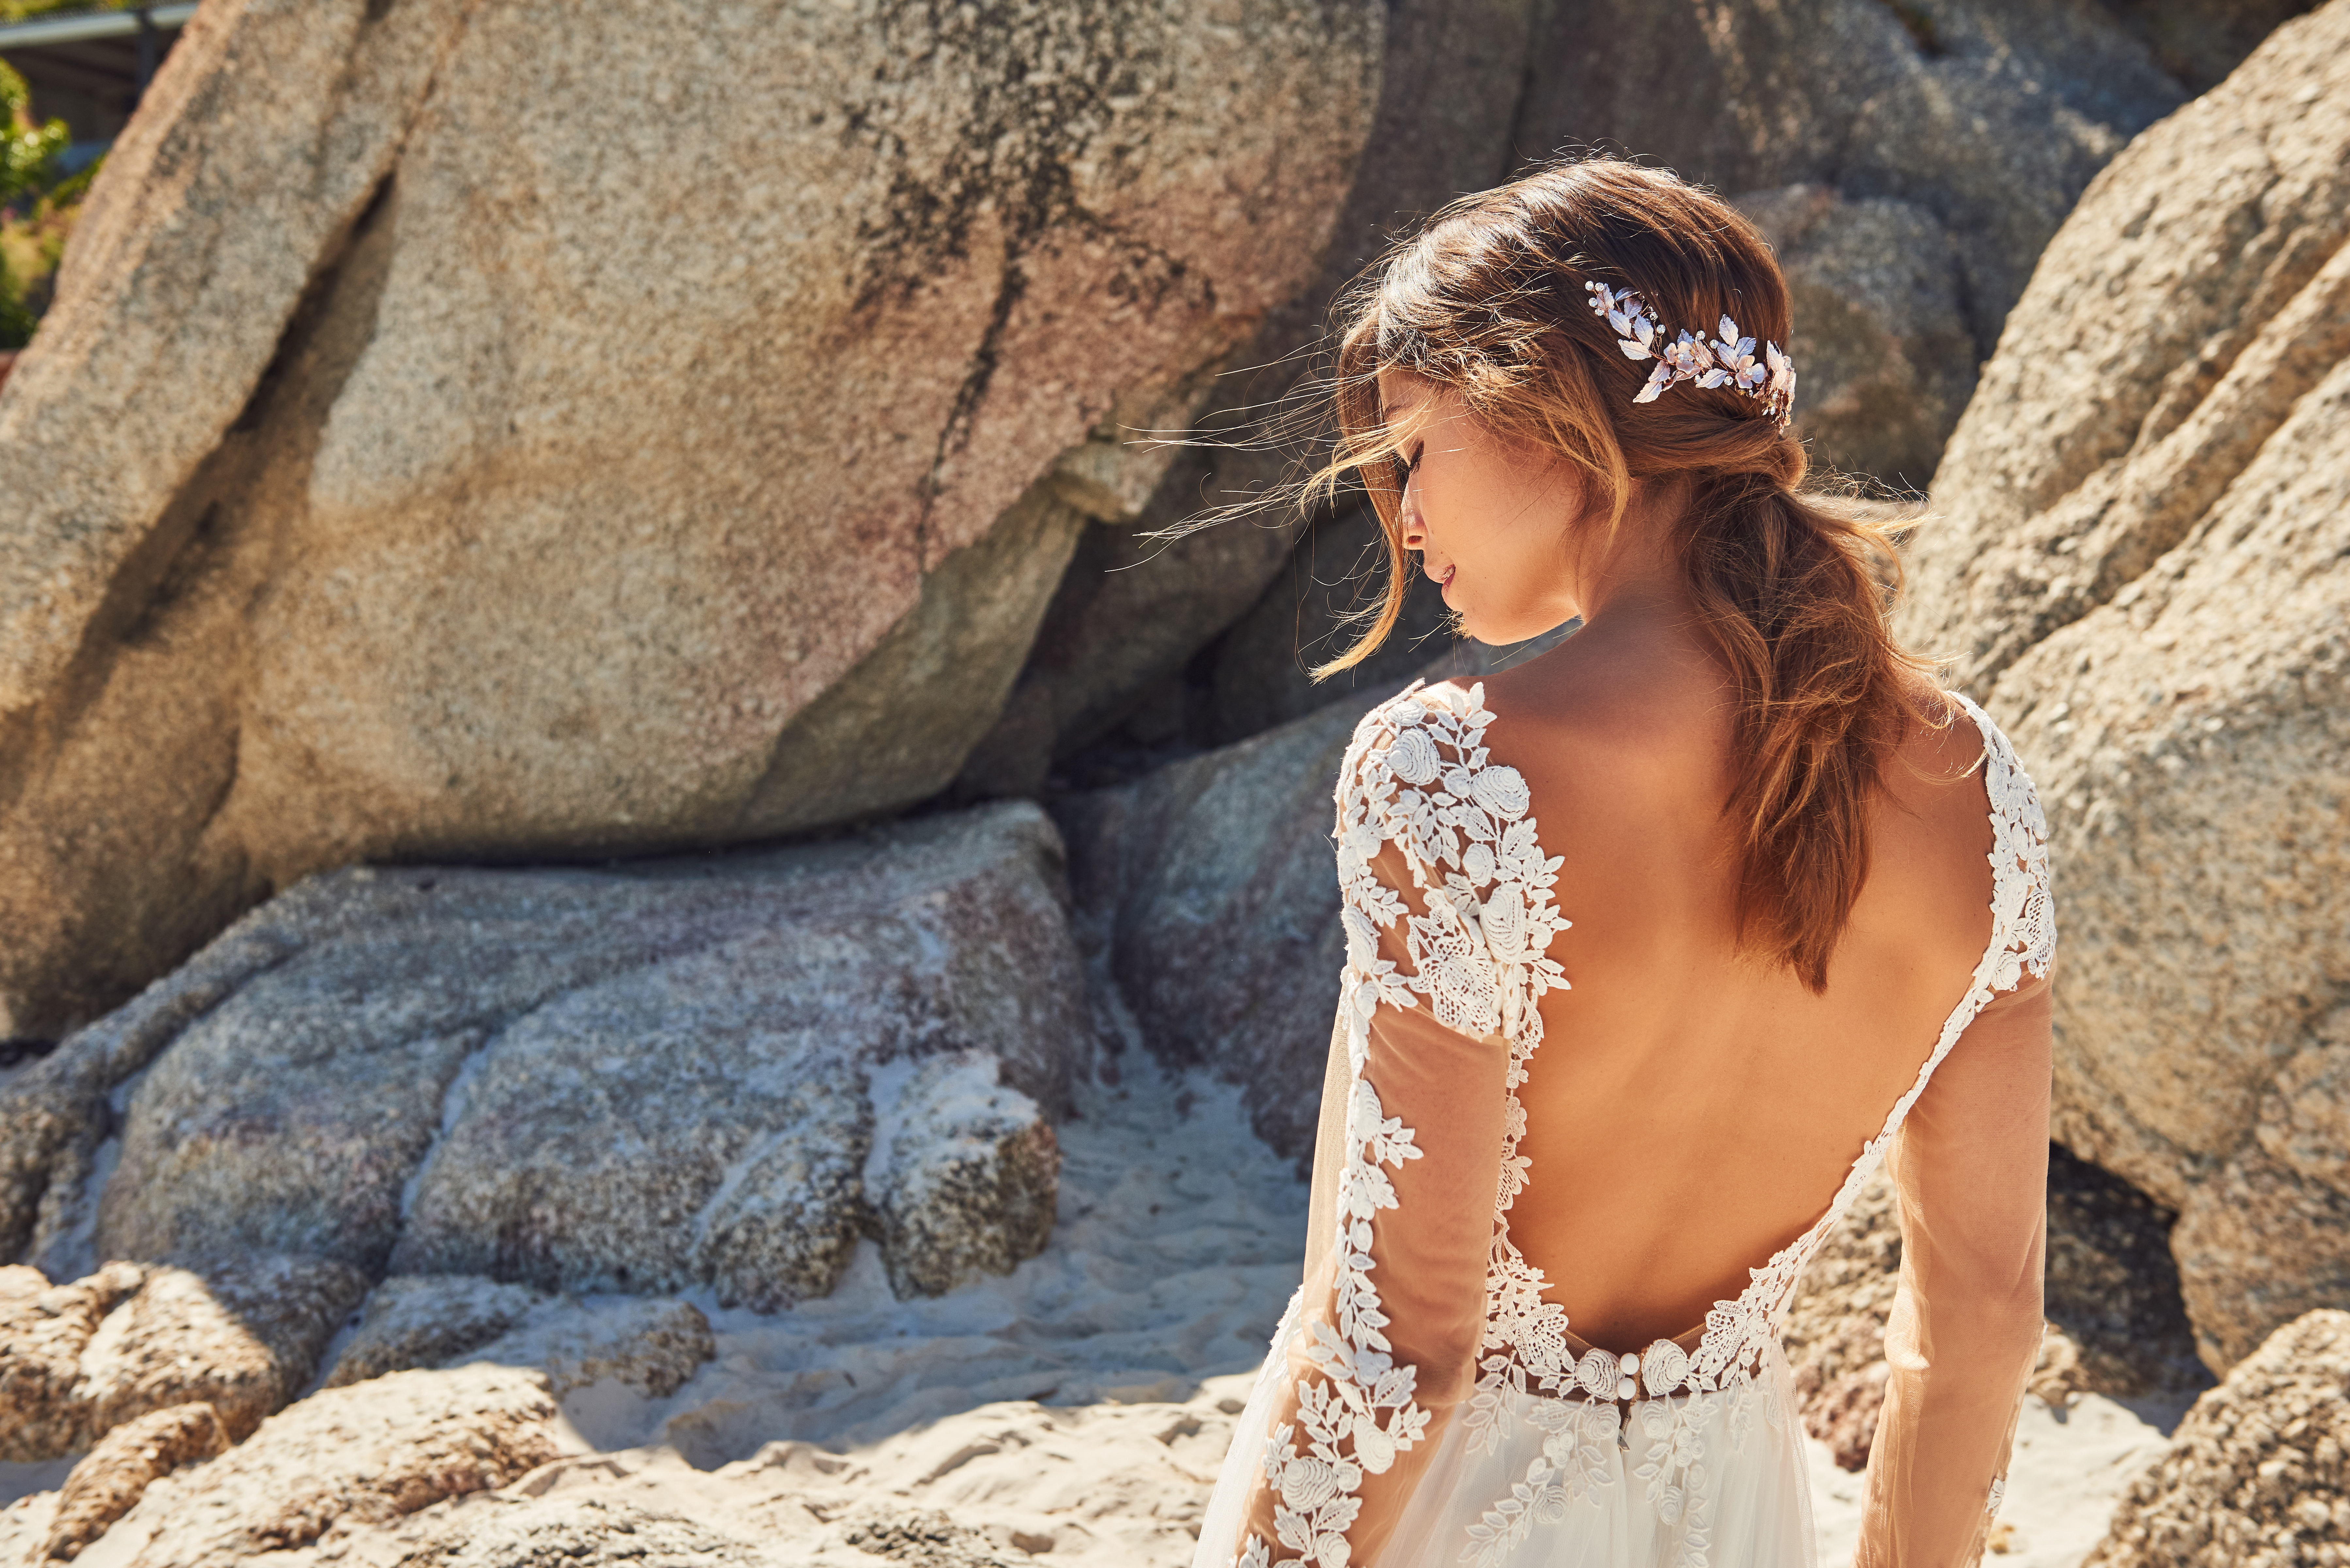 Hair jewelry for the Bride to be